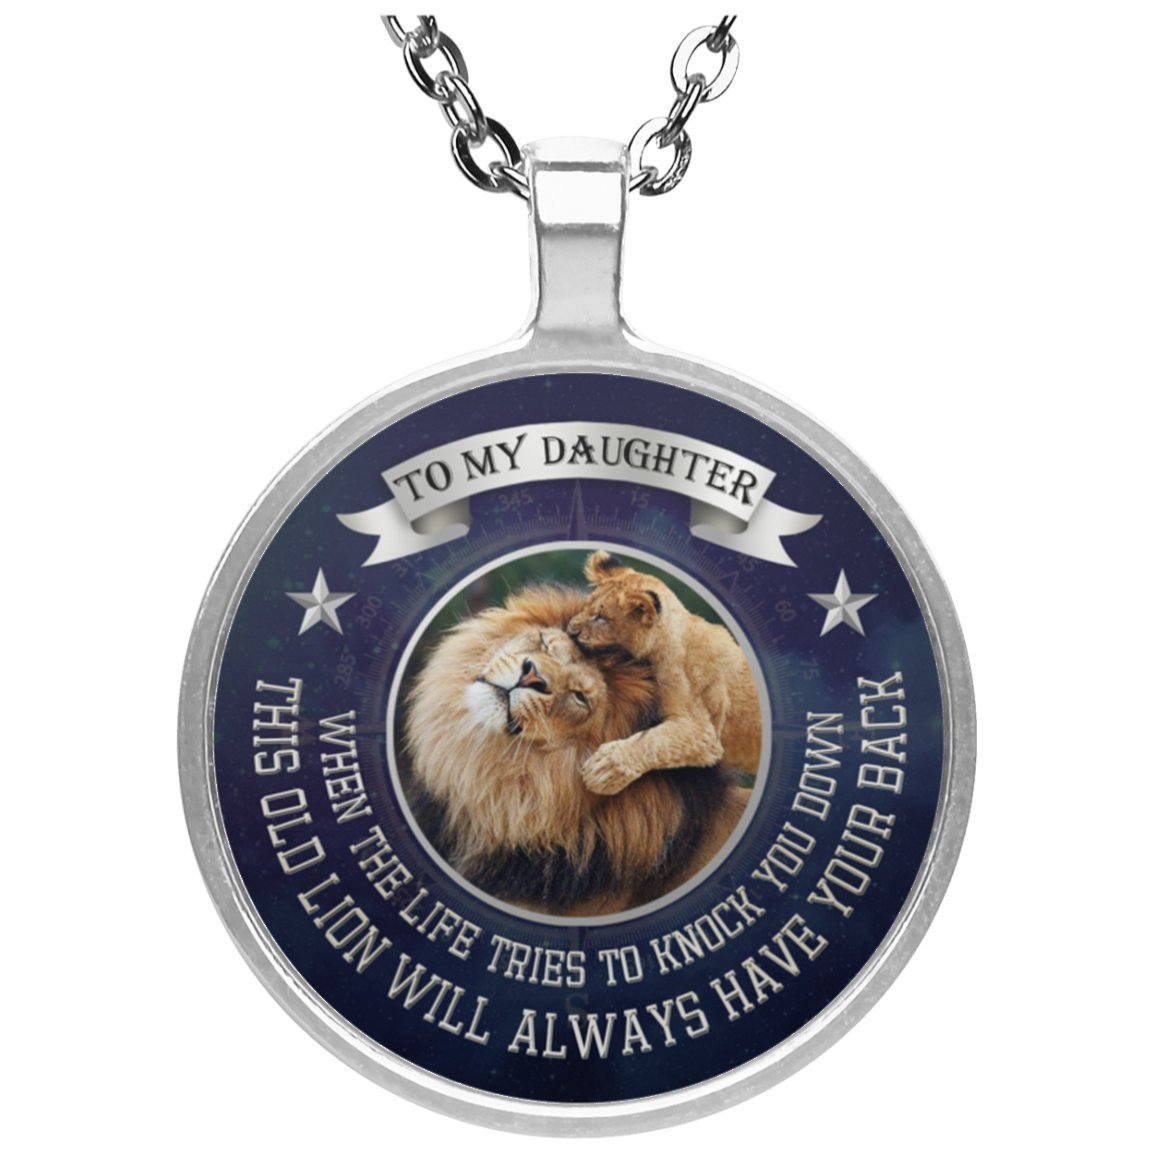 Personalized To My Daughter Necklace Jewelry Love Dad - This Old Lion Will Always Have Your Back - Happy Birthday Gift For Daughter from Father Silver Plated Pendant Chain 20 inch by AZ Gifts Plus (Image #1)